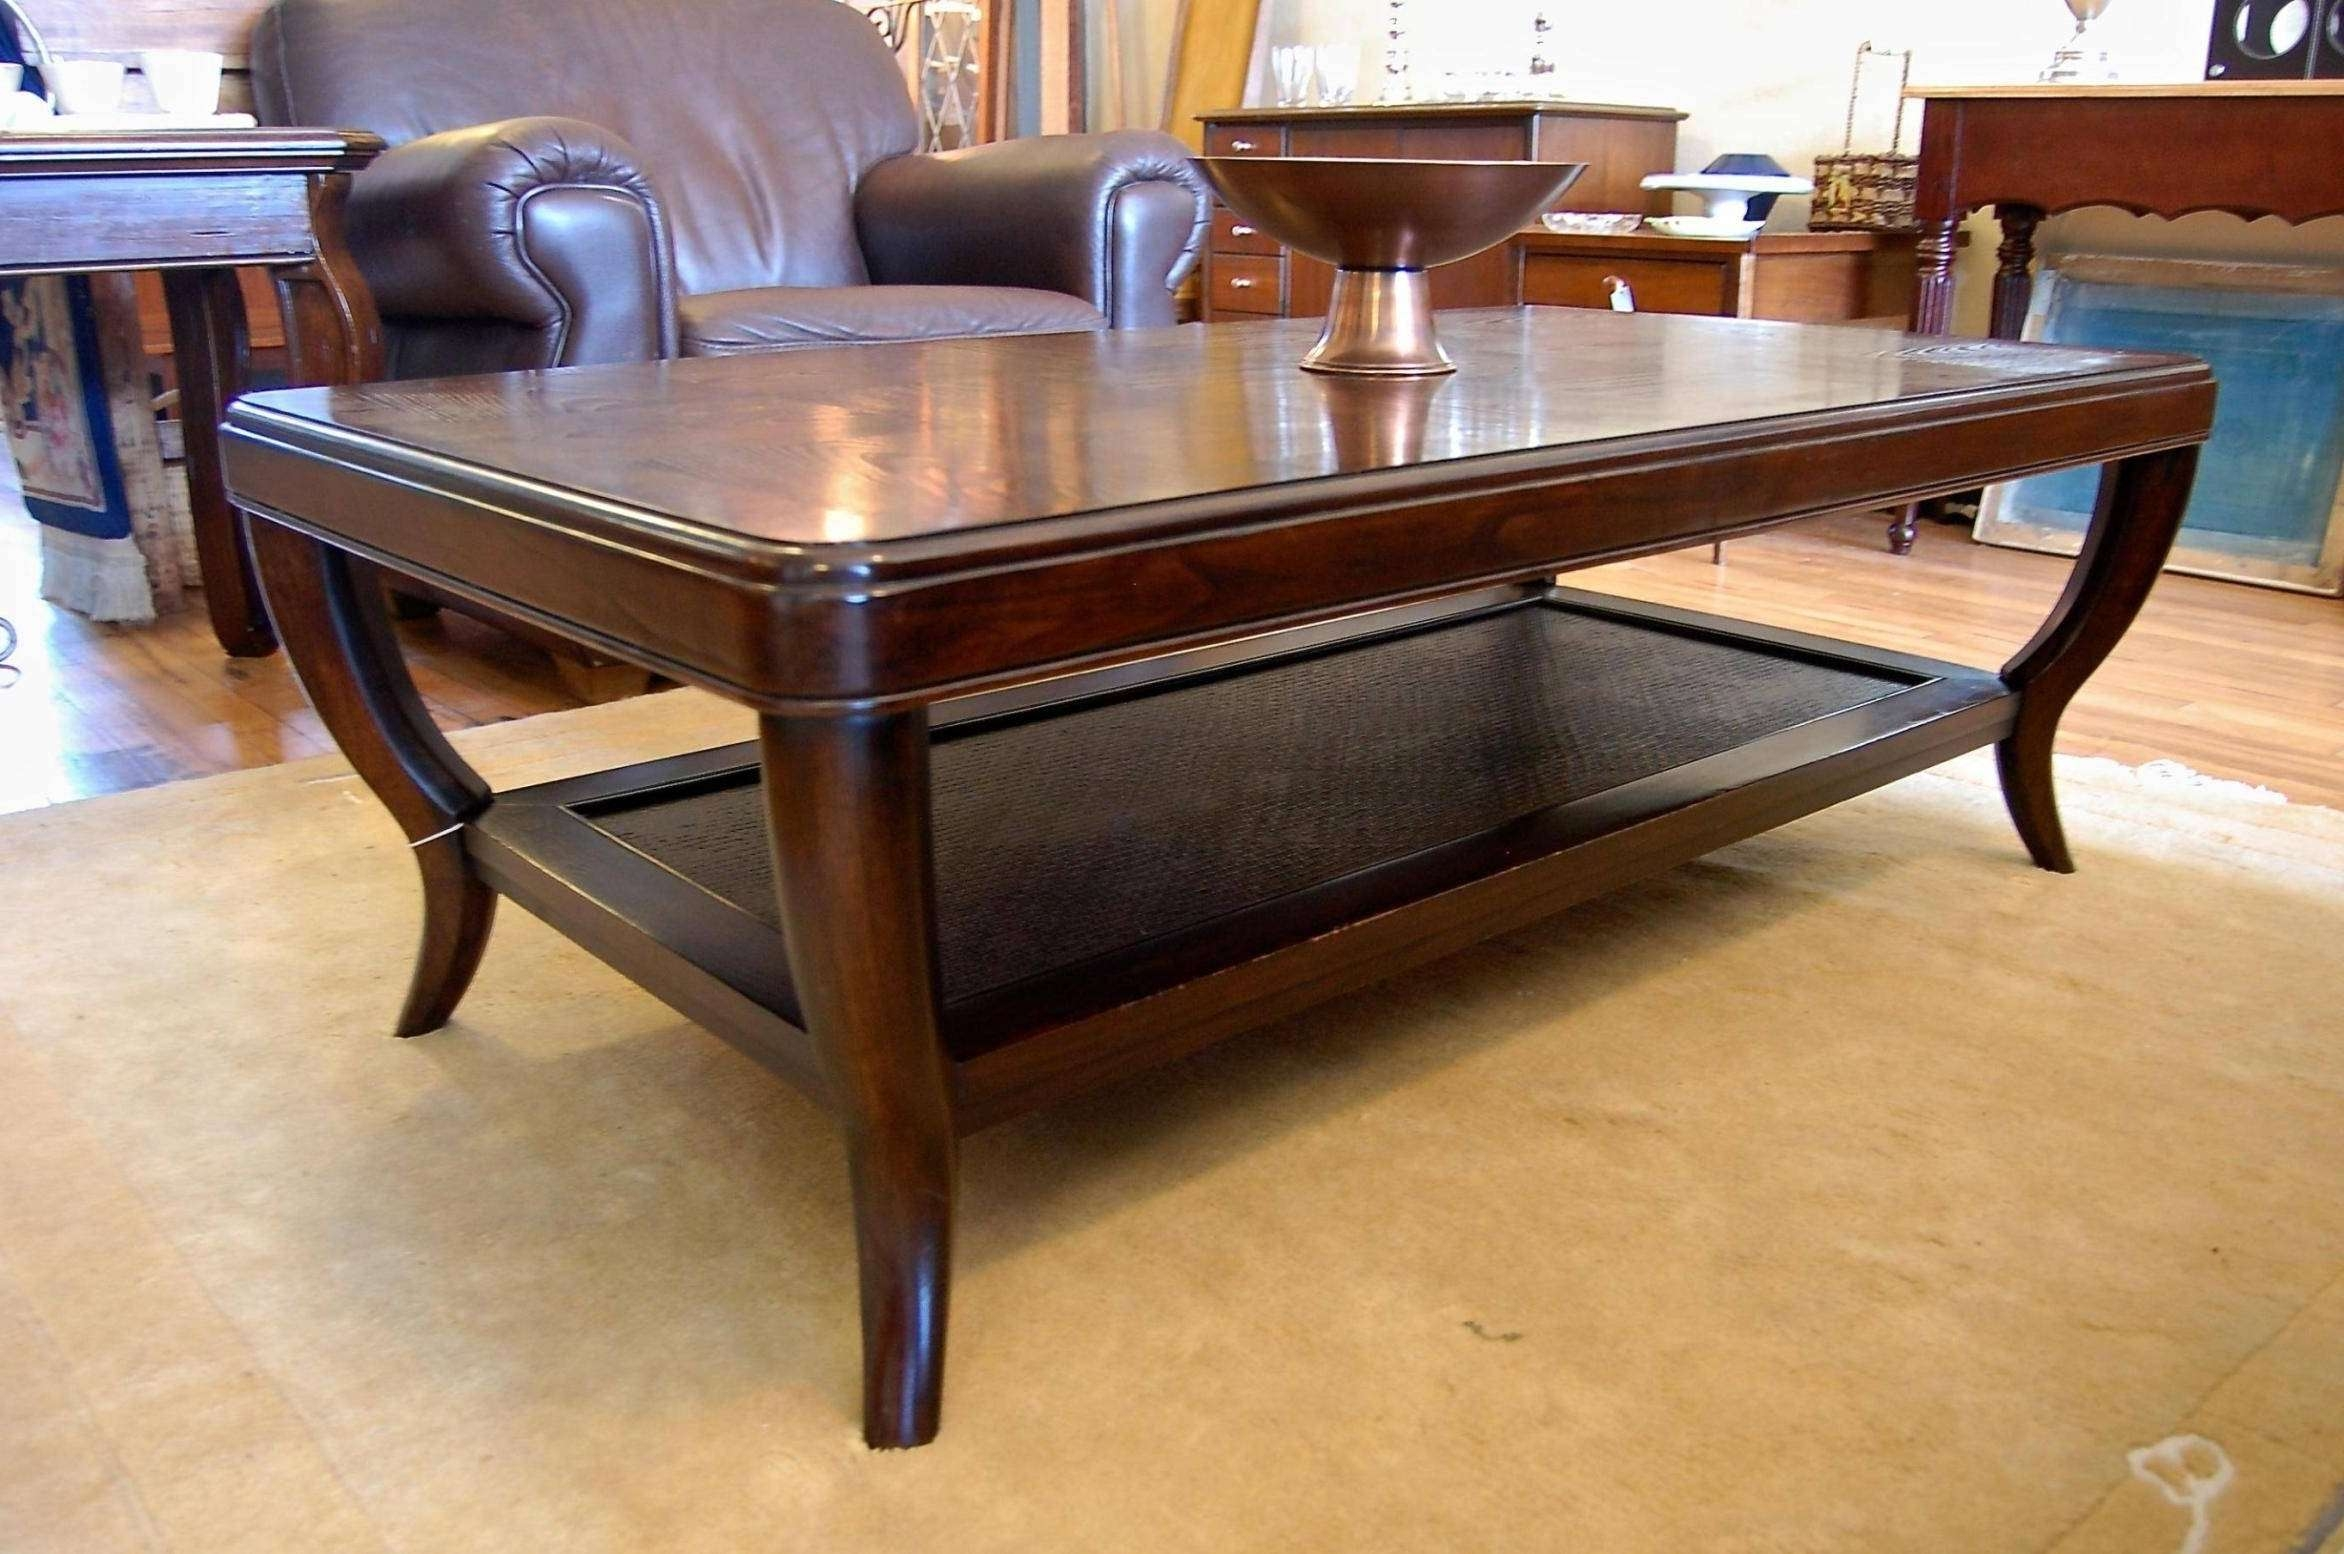 Most Popular Oversized Square Coffee Tables For Coffee Tables : Breathtaking Oversized Square Coffee Tablesver (View 13 of 20)